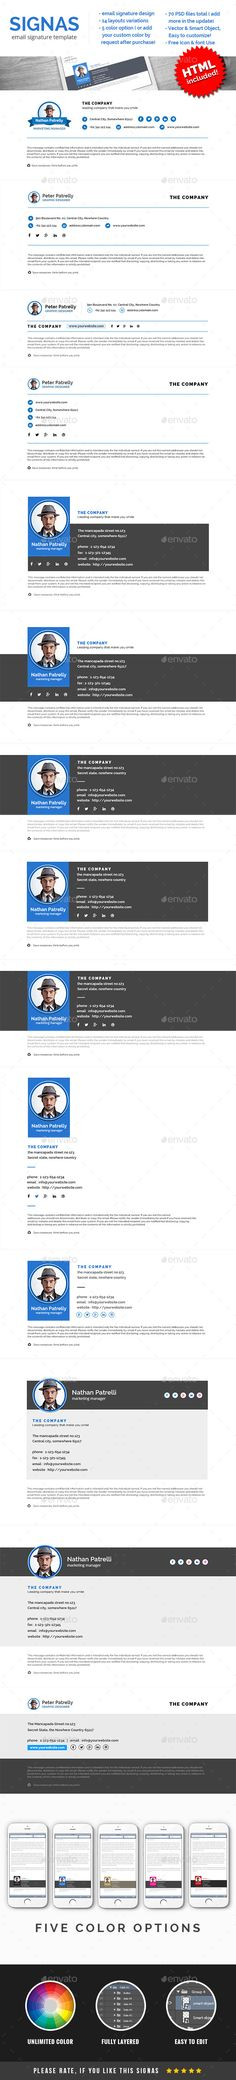 Signas Vol.02 - Email Signature Template + Included HTML